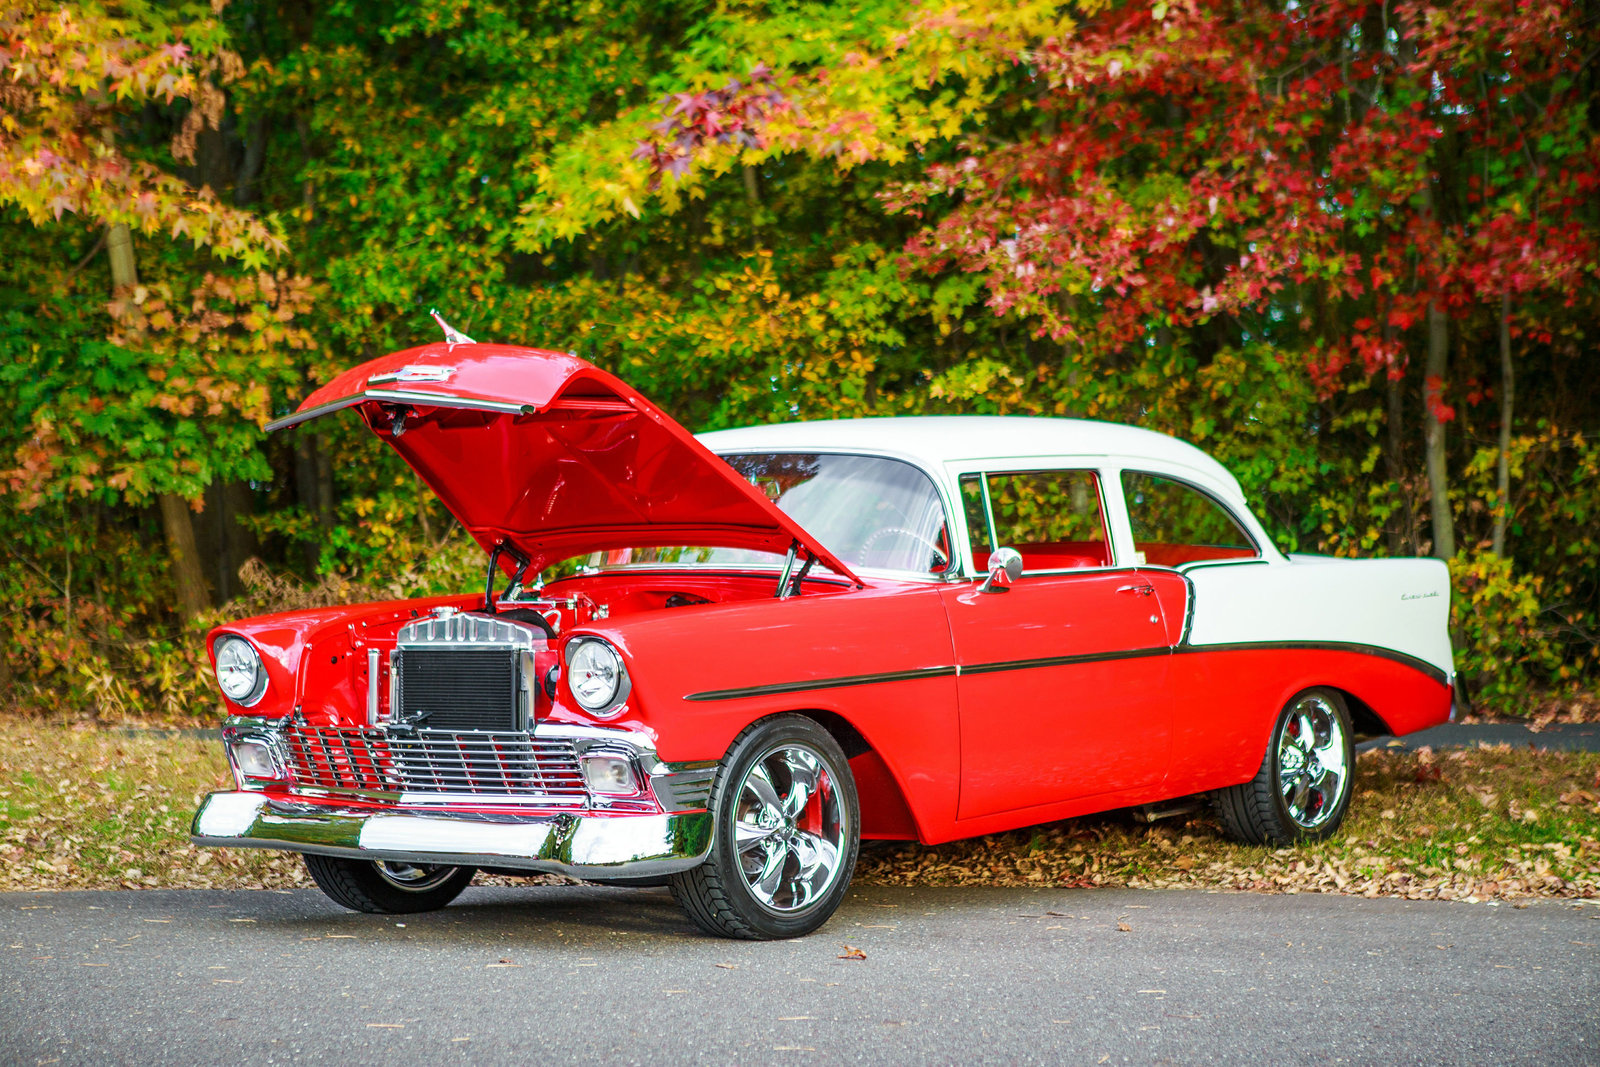 Retro_Pinup_Car_engagement_session_Nj102